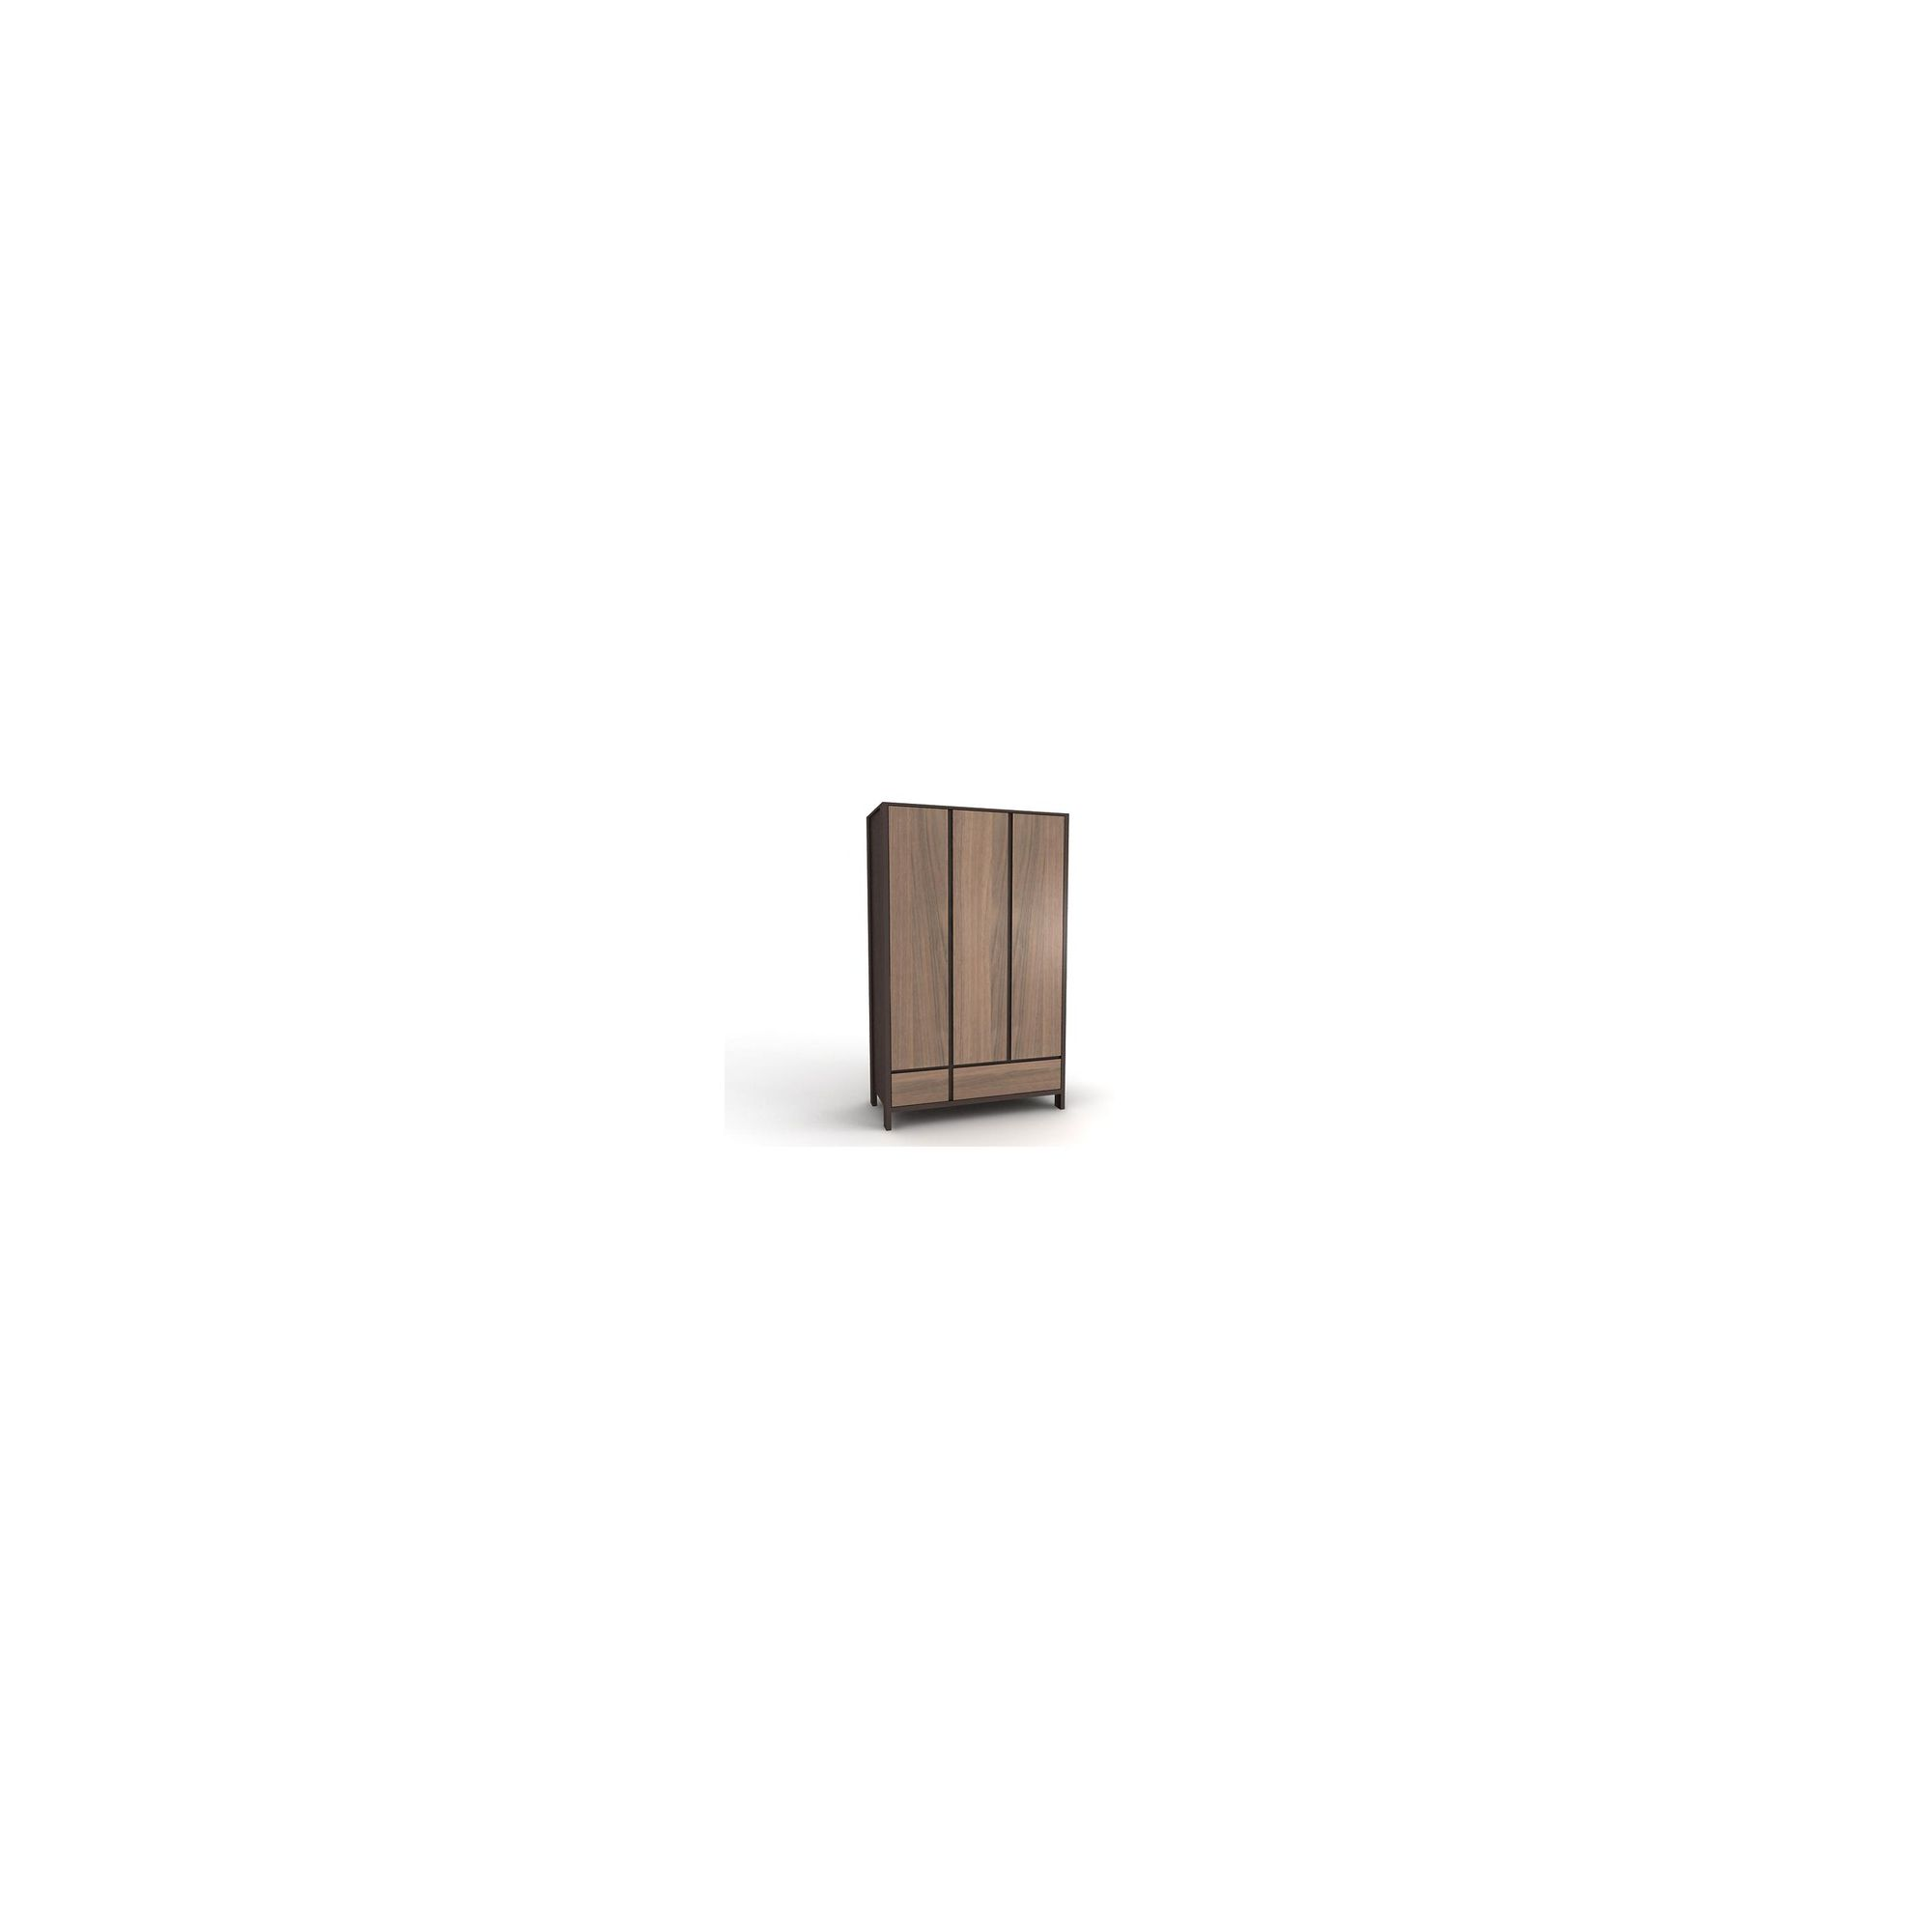 Urbane Designs Tokyo 3 Door 2 Drawer Wardrobe at Tesco Direct